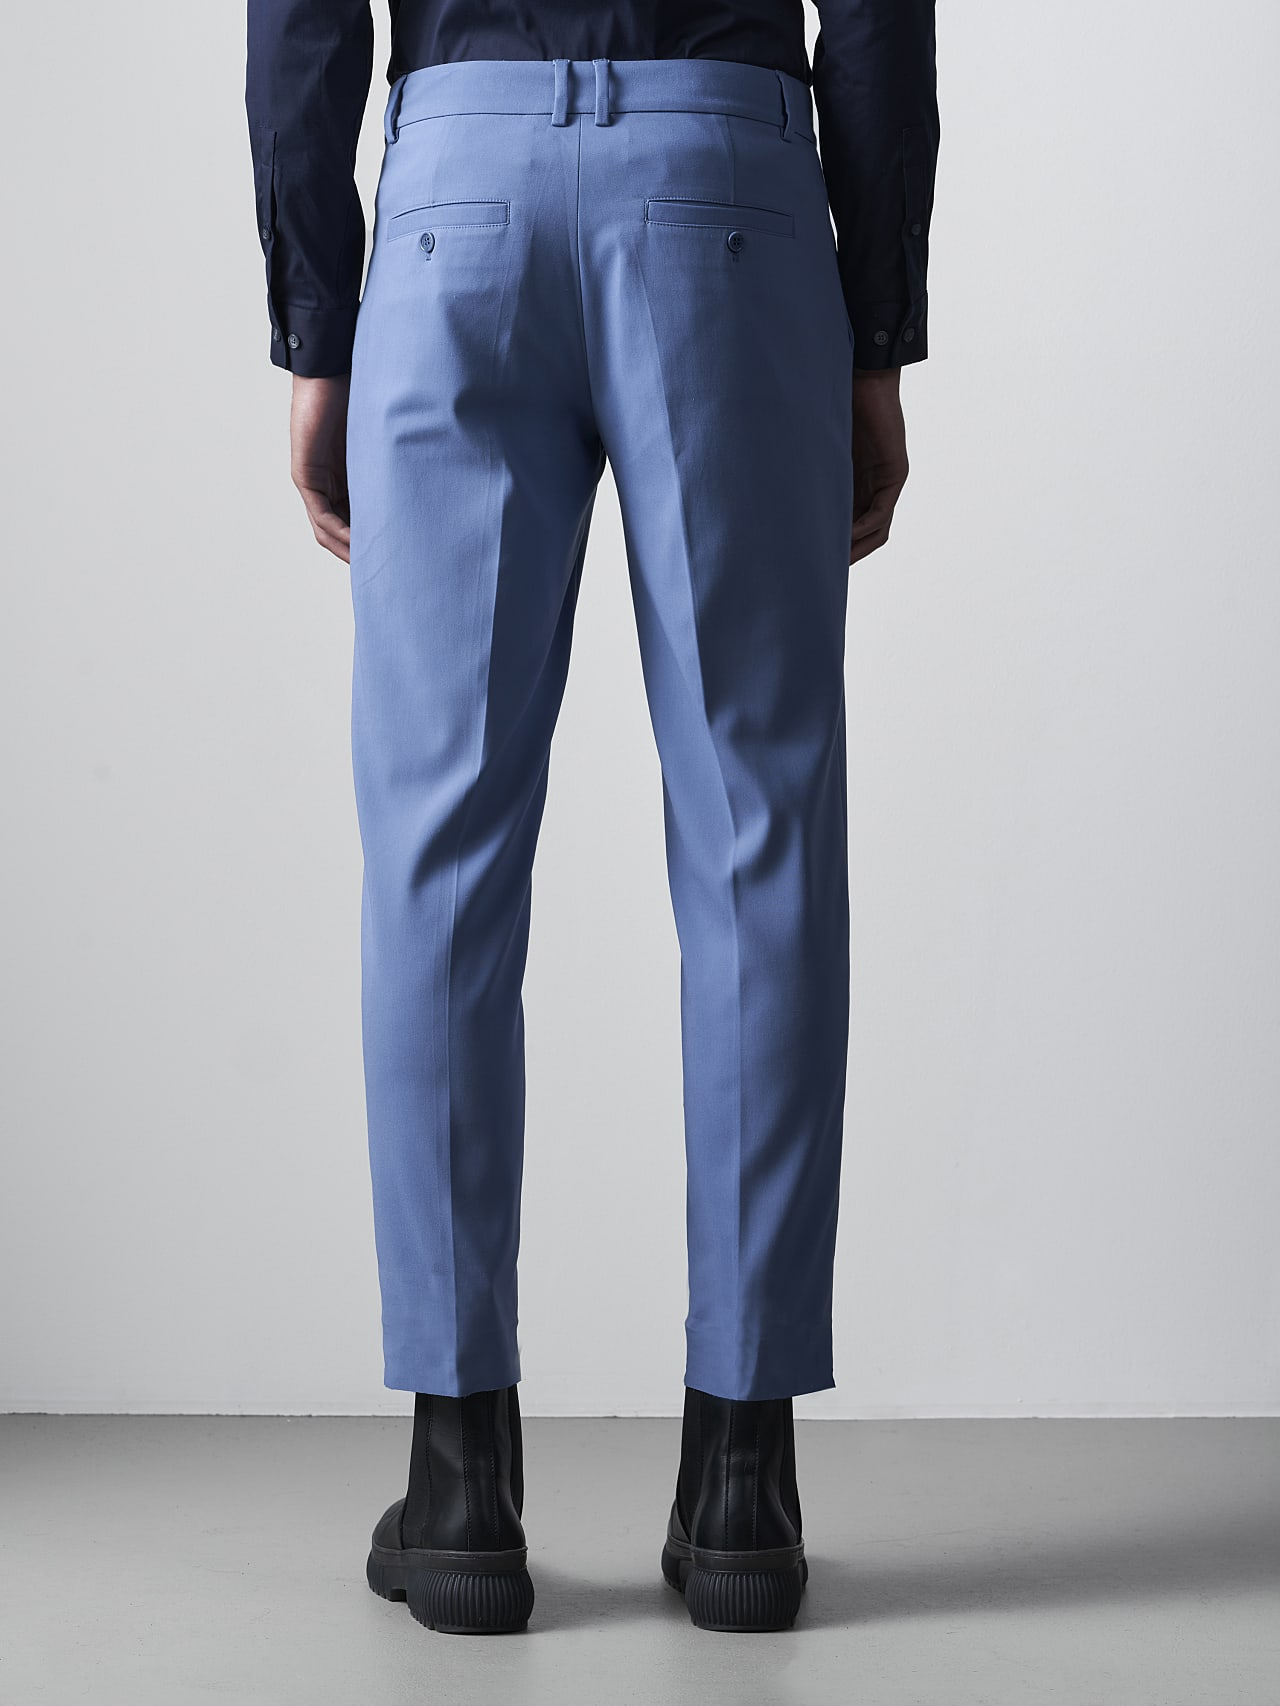 PELAN V1.Y5.02 Tapered Pants with Pleats light blue Front Main Alpha Tauri